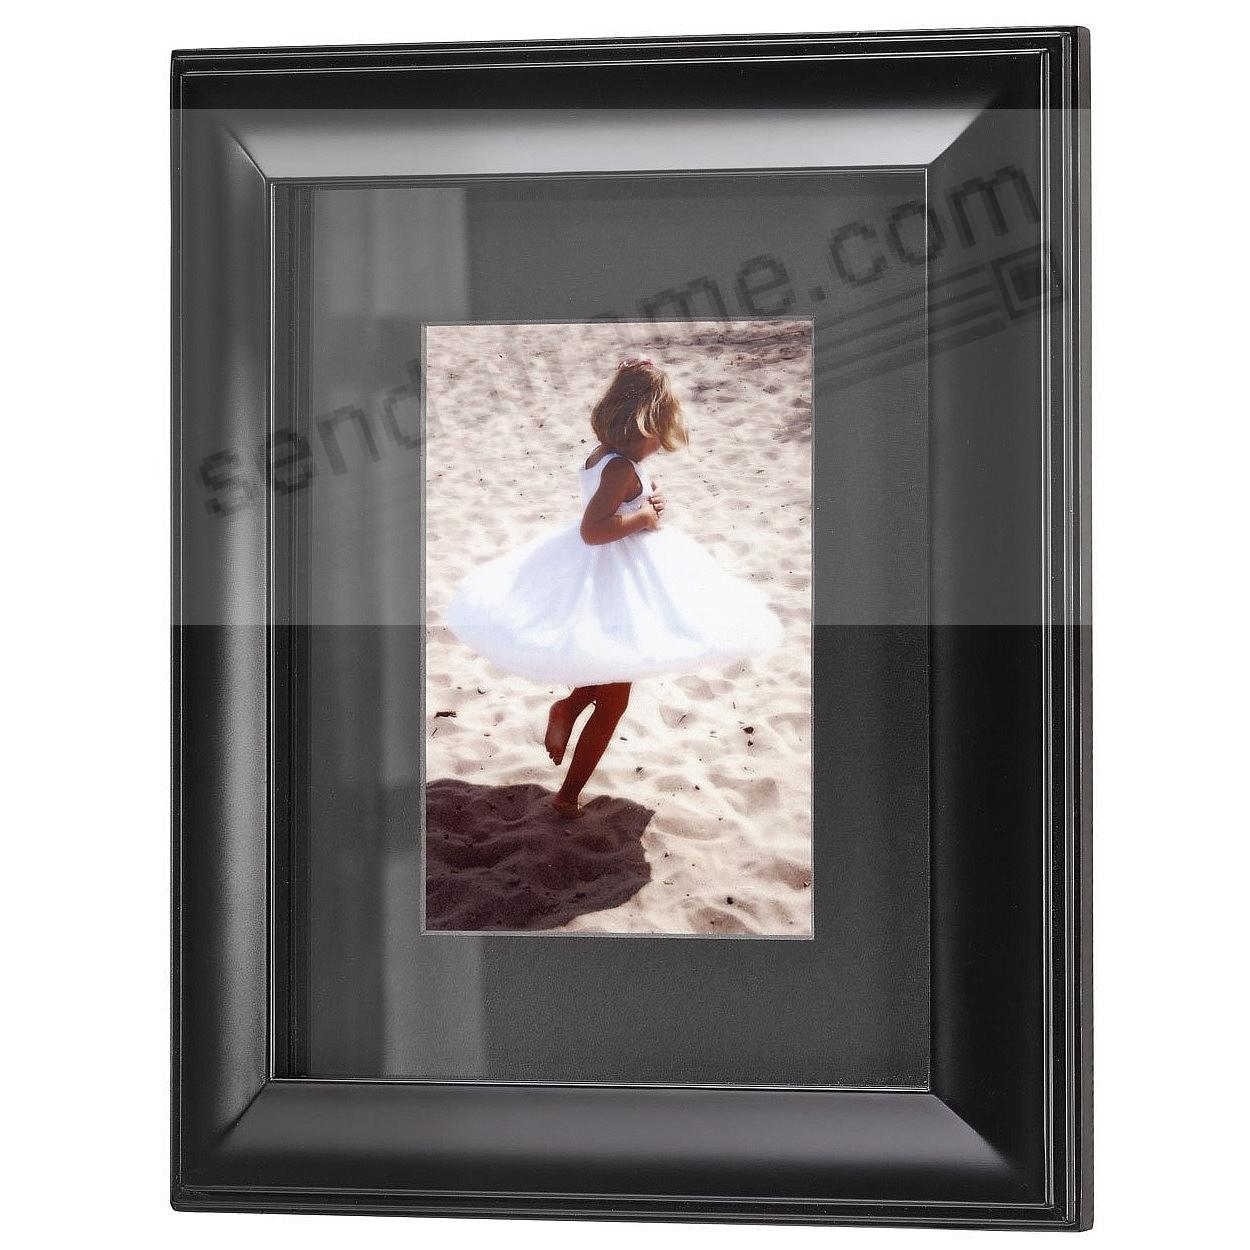 HUDSON Black-Matted Ebony-Black Wood frame 16x20/11x14 from ARTCARE® by Nielsen®